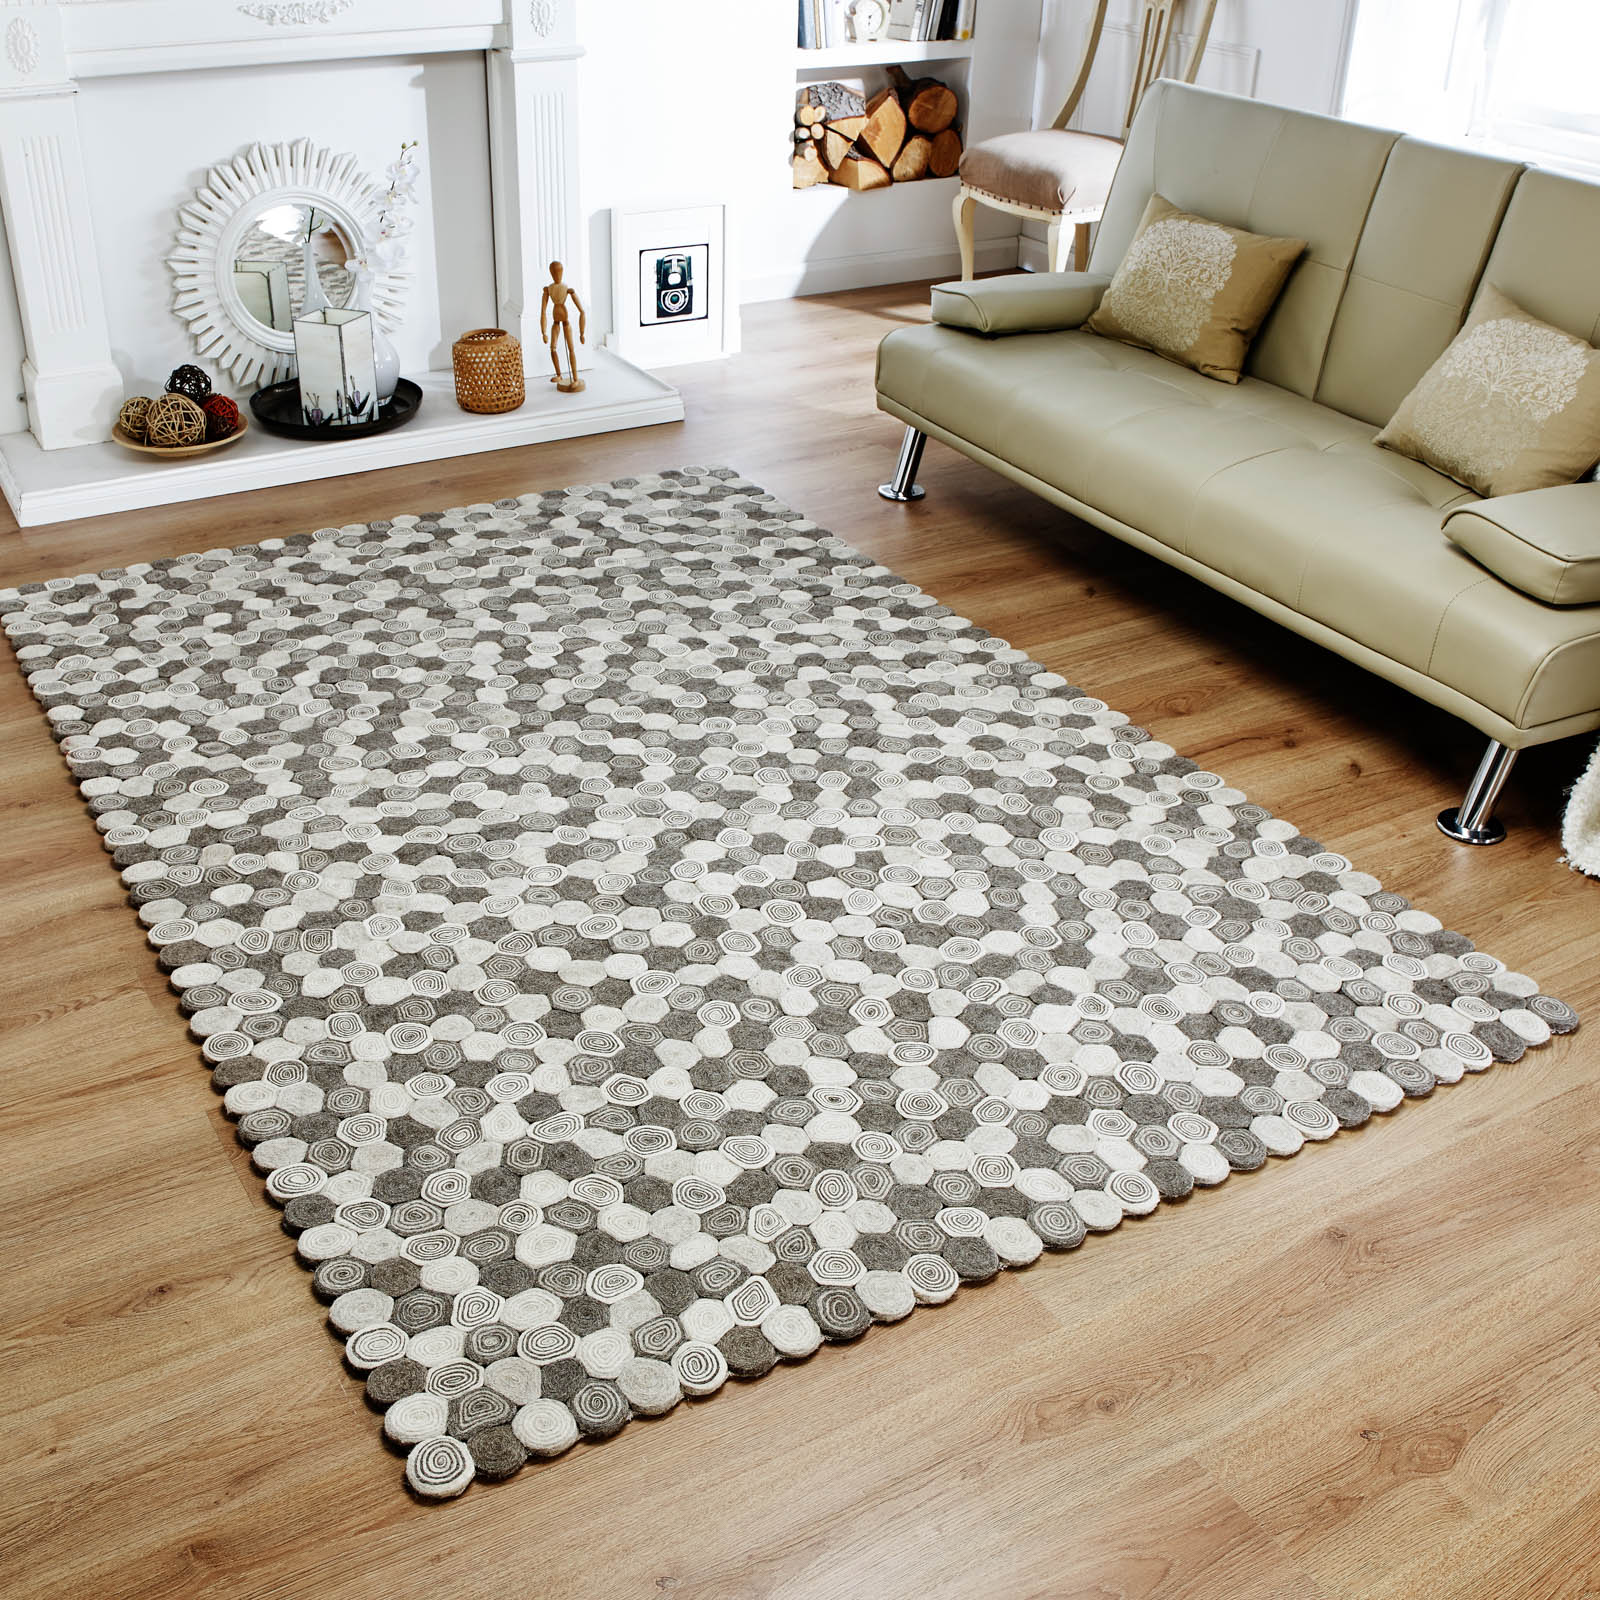 Lagom sushi rugs in monchrome